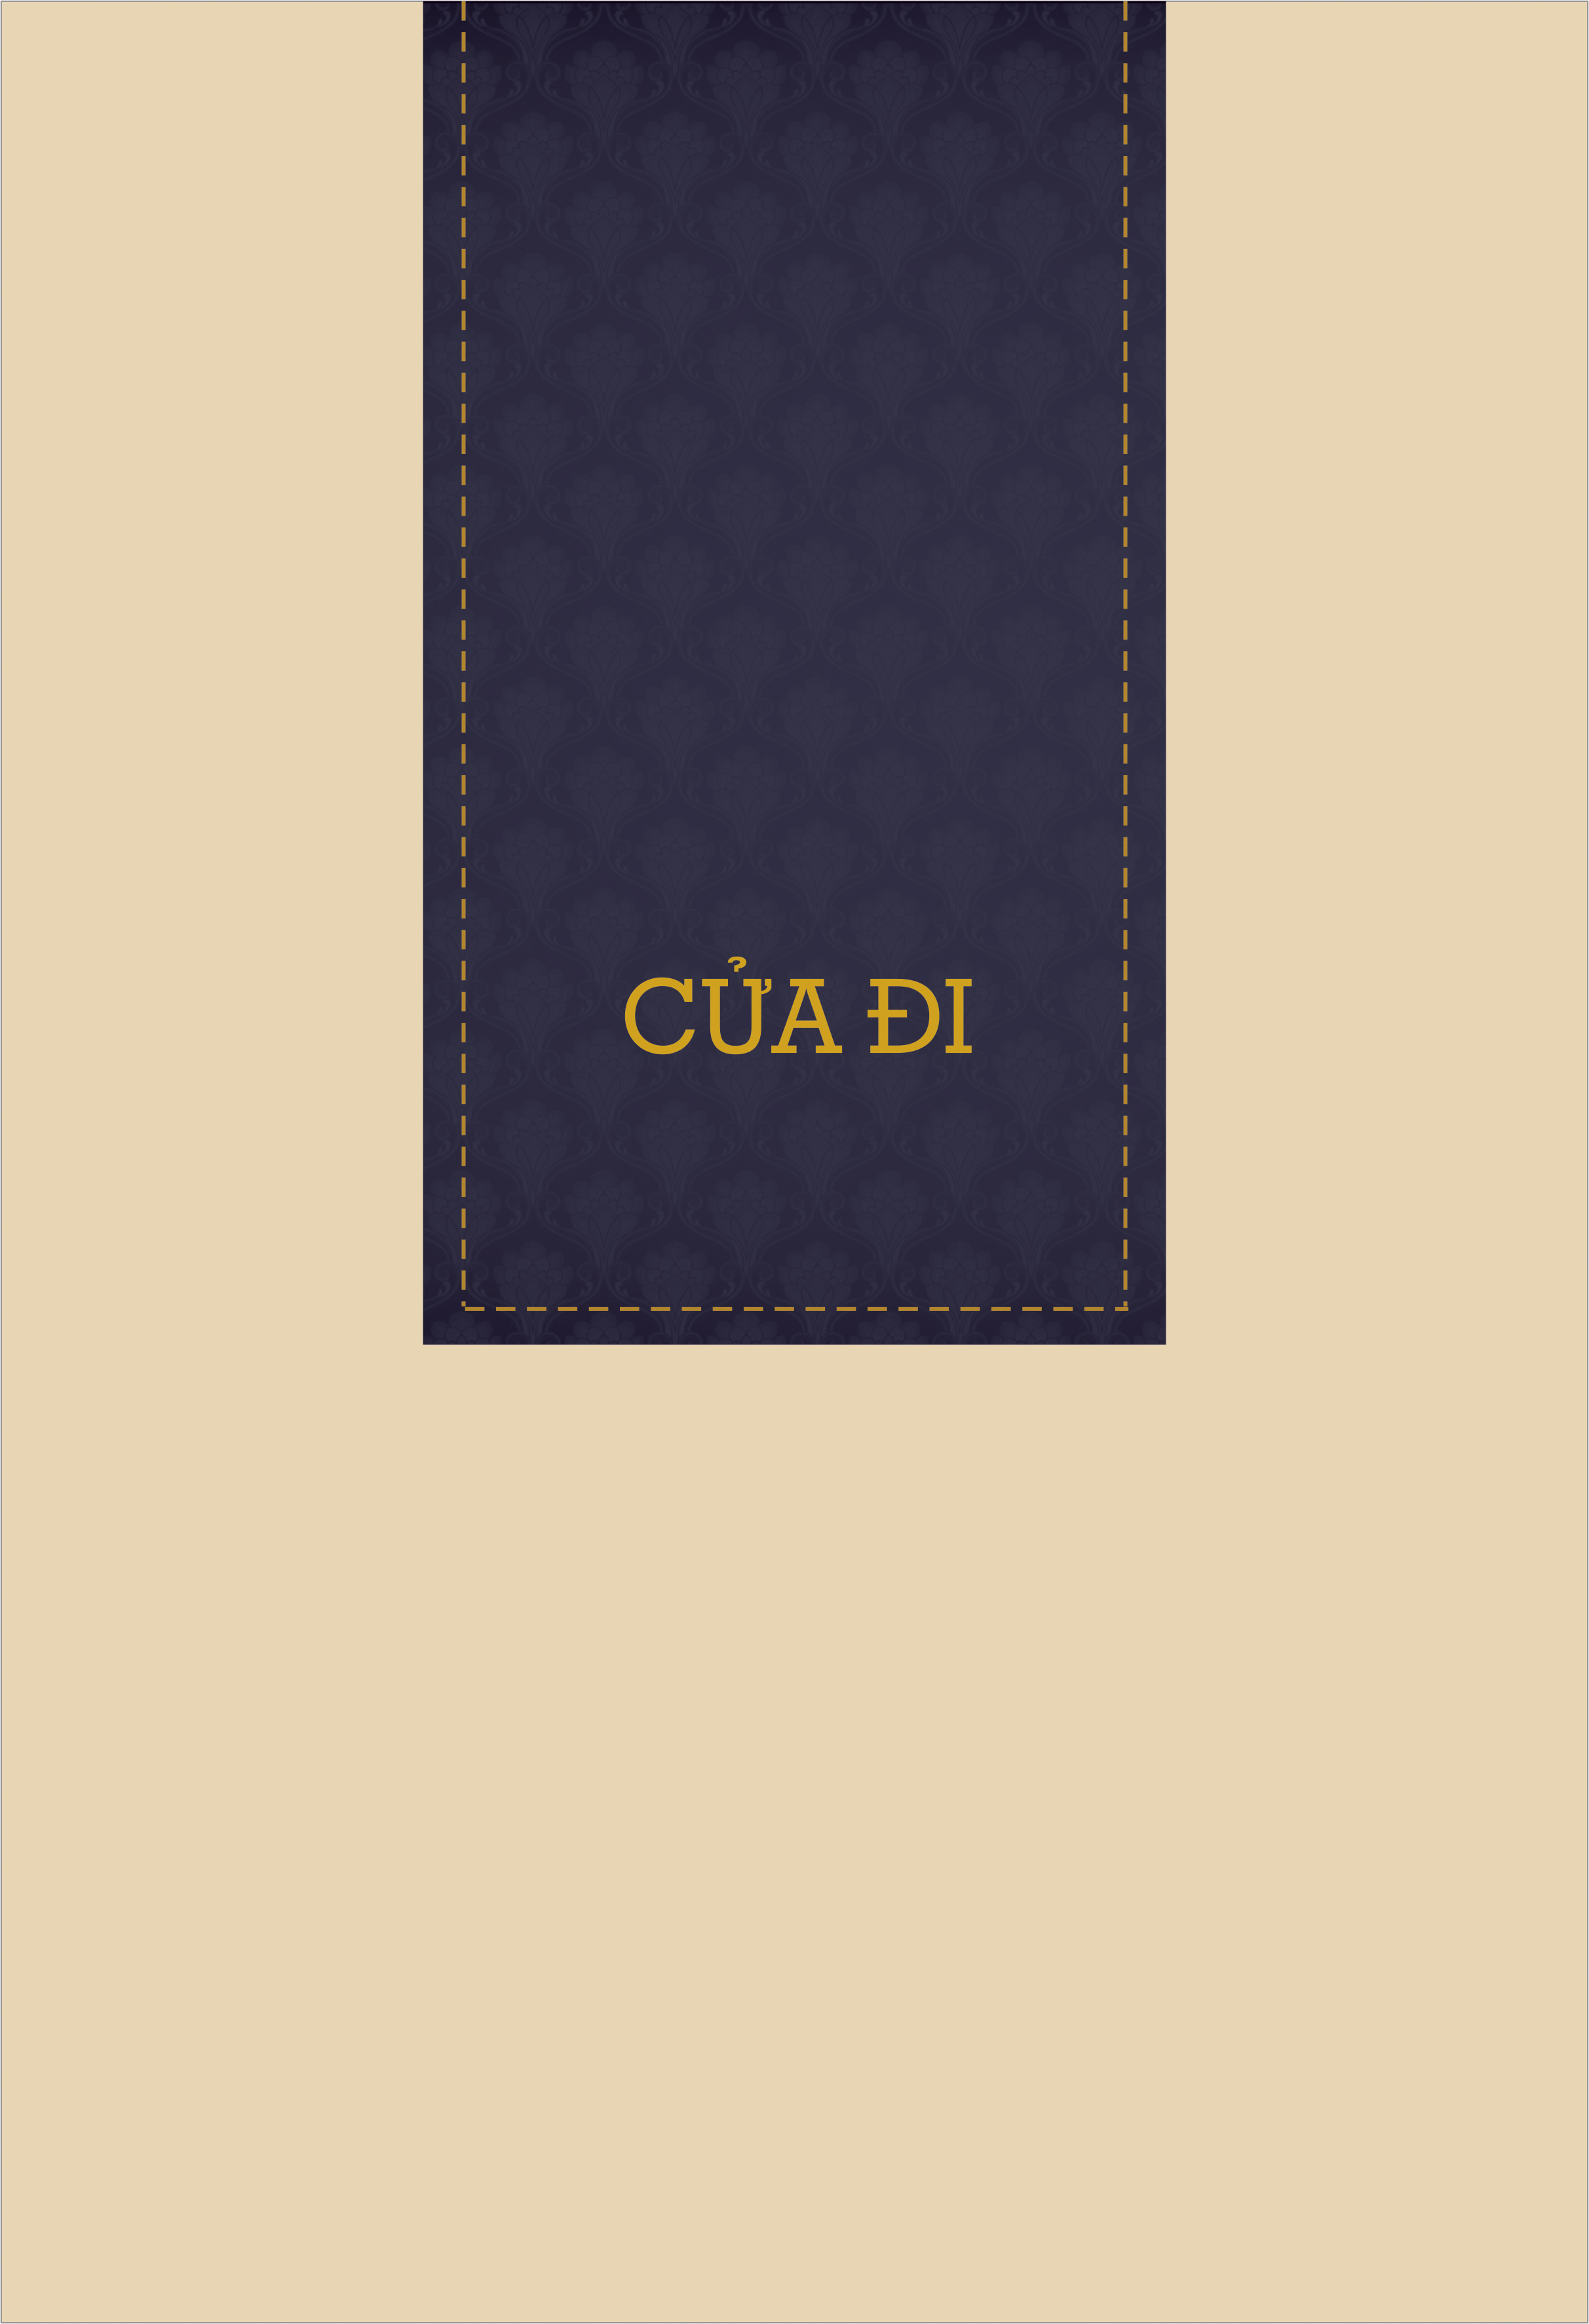 catalogue-cua-di